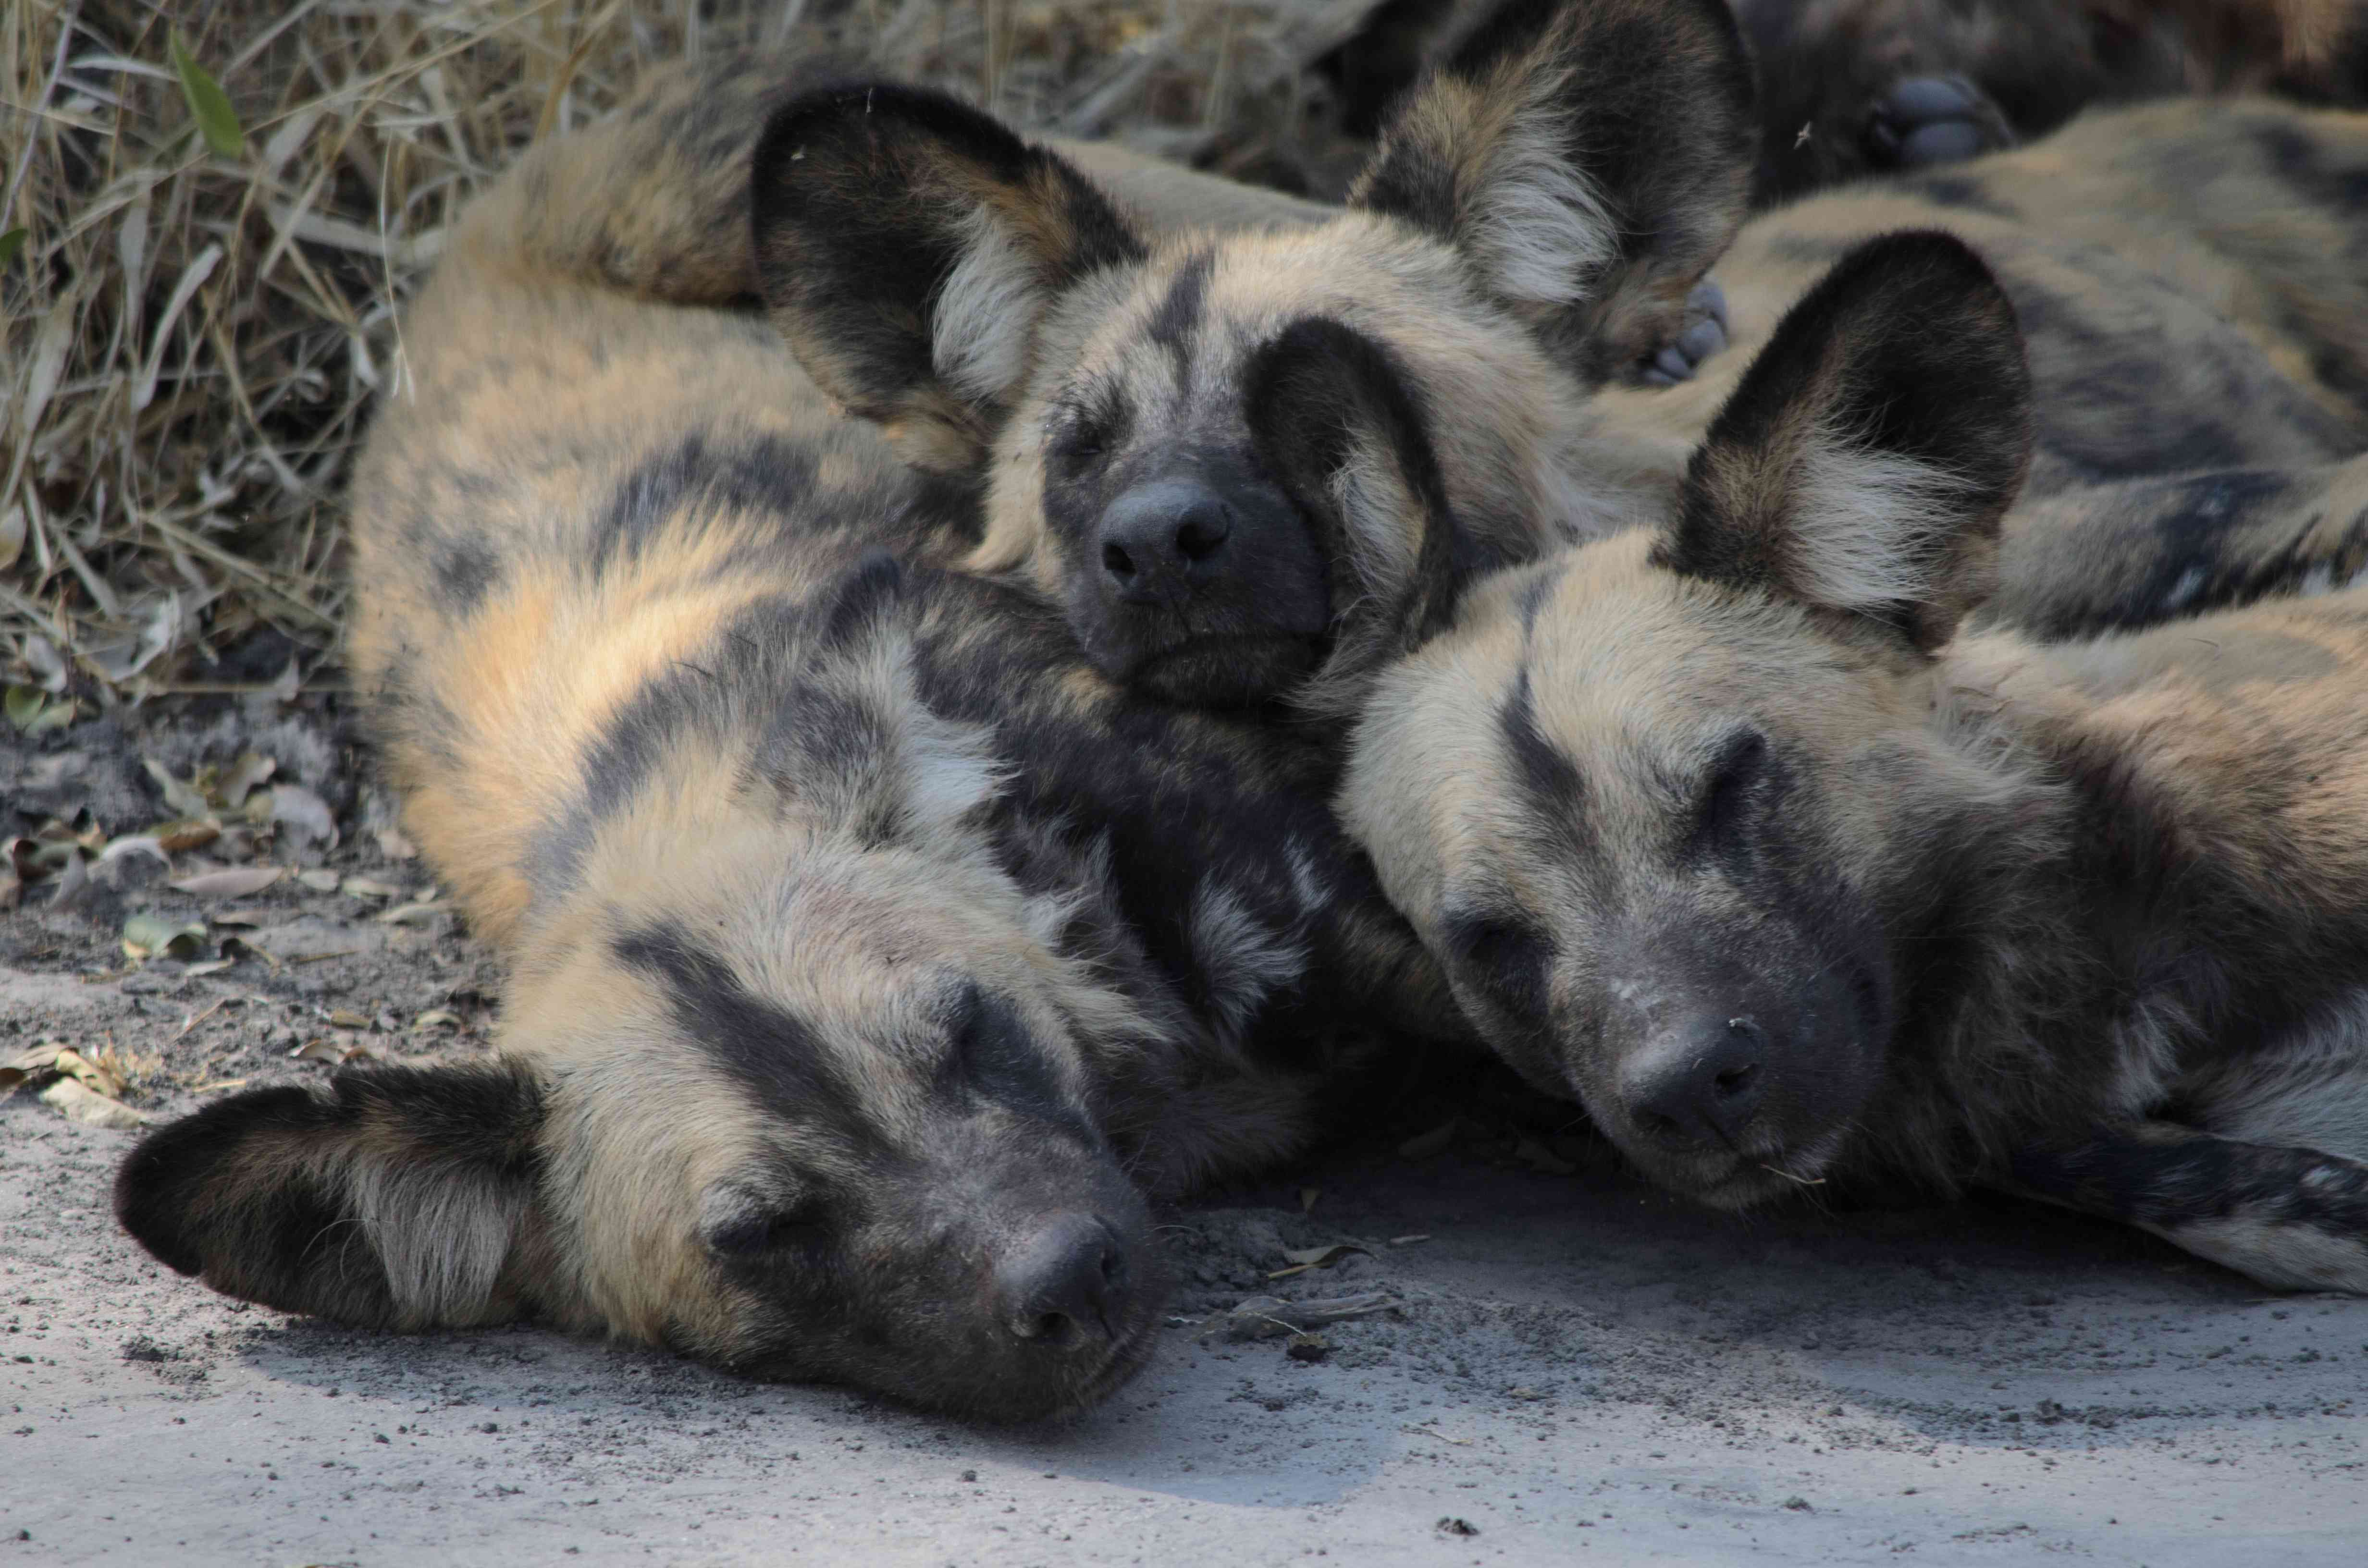 A pile of three African wild dogs snuggled up together on the ground with their eyes closed.